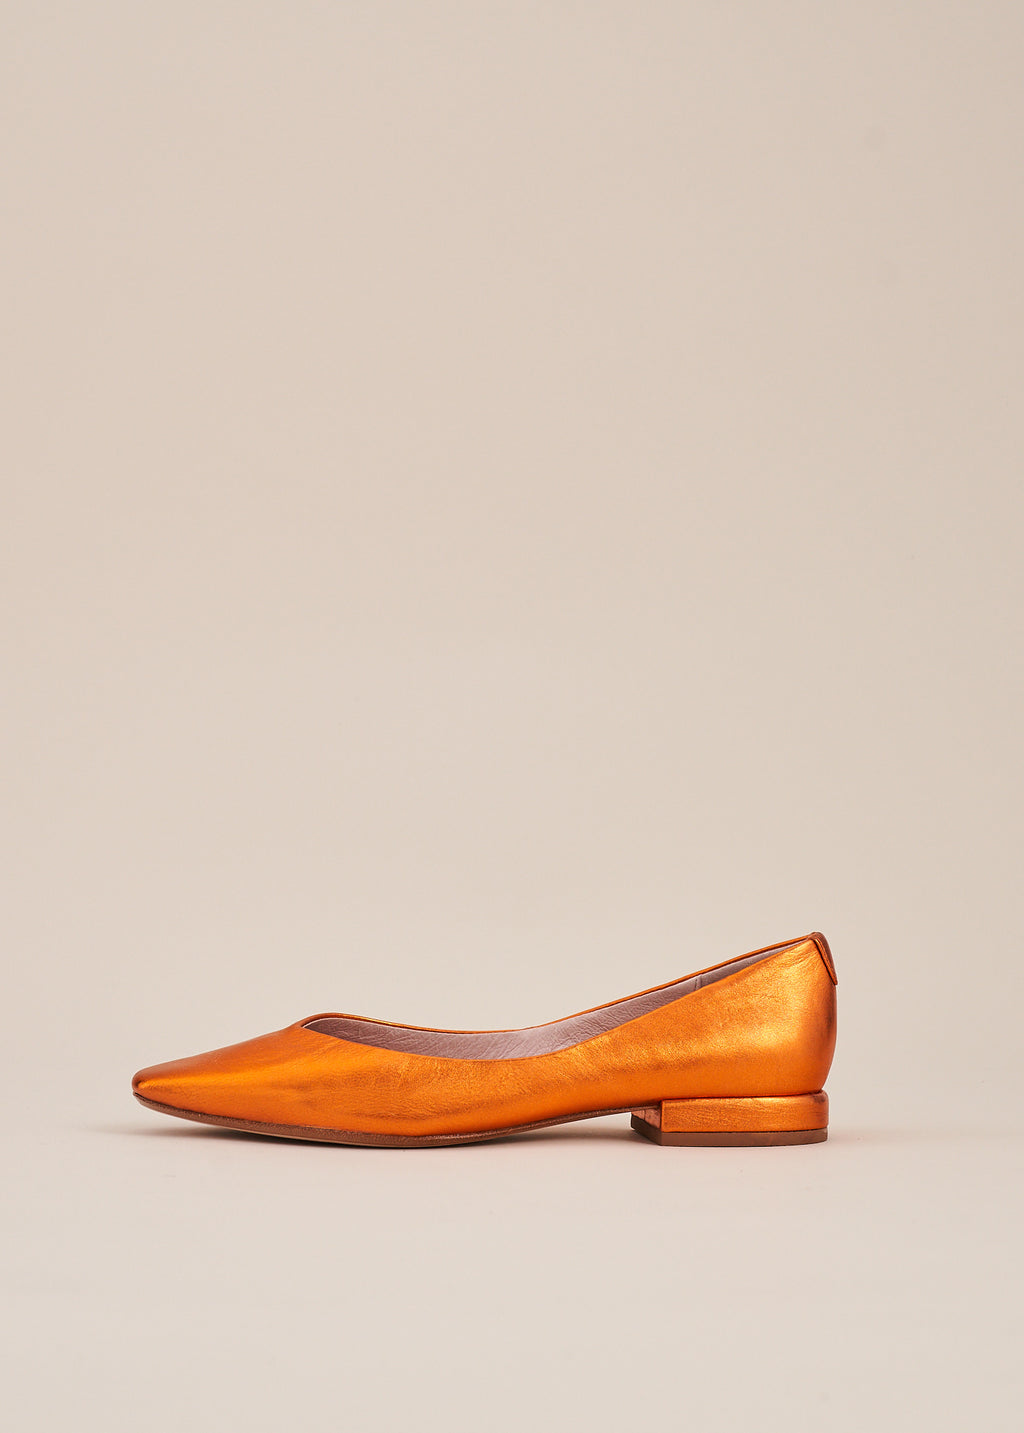 Polly Orange Metallic Square Toe Ballet Flat- LAST FEW PAIRS!